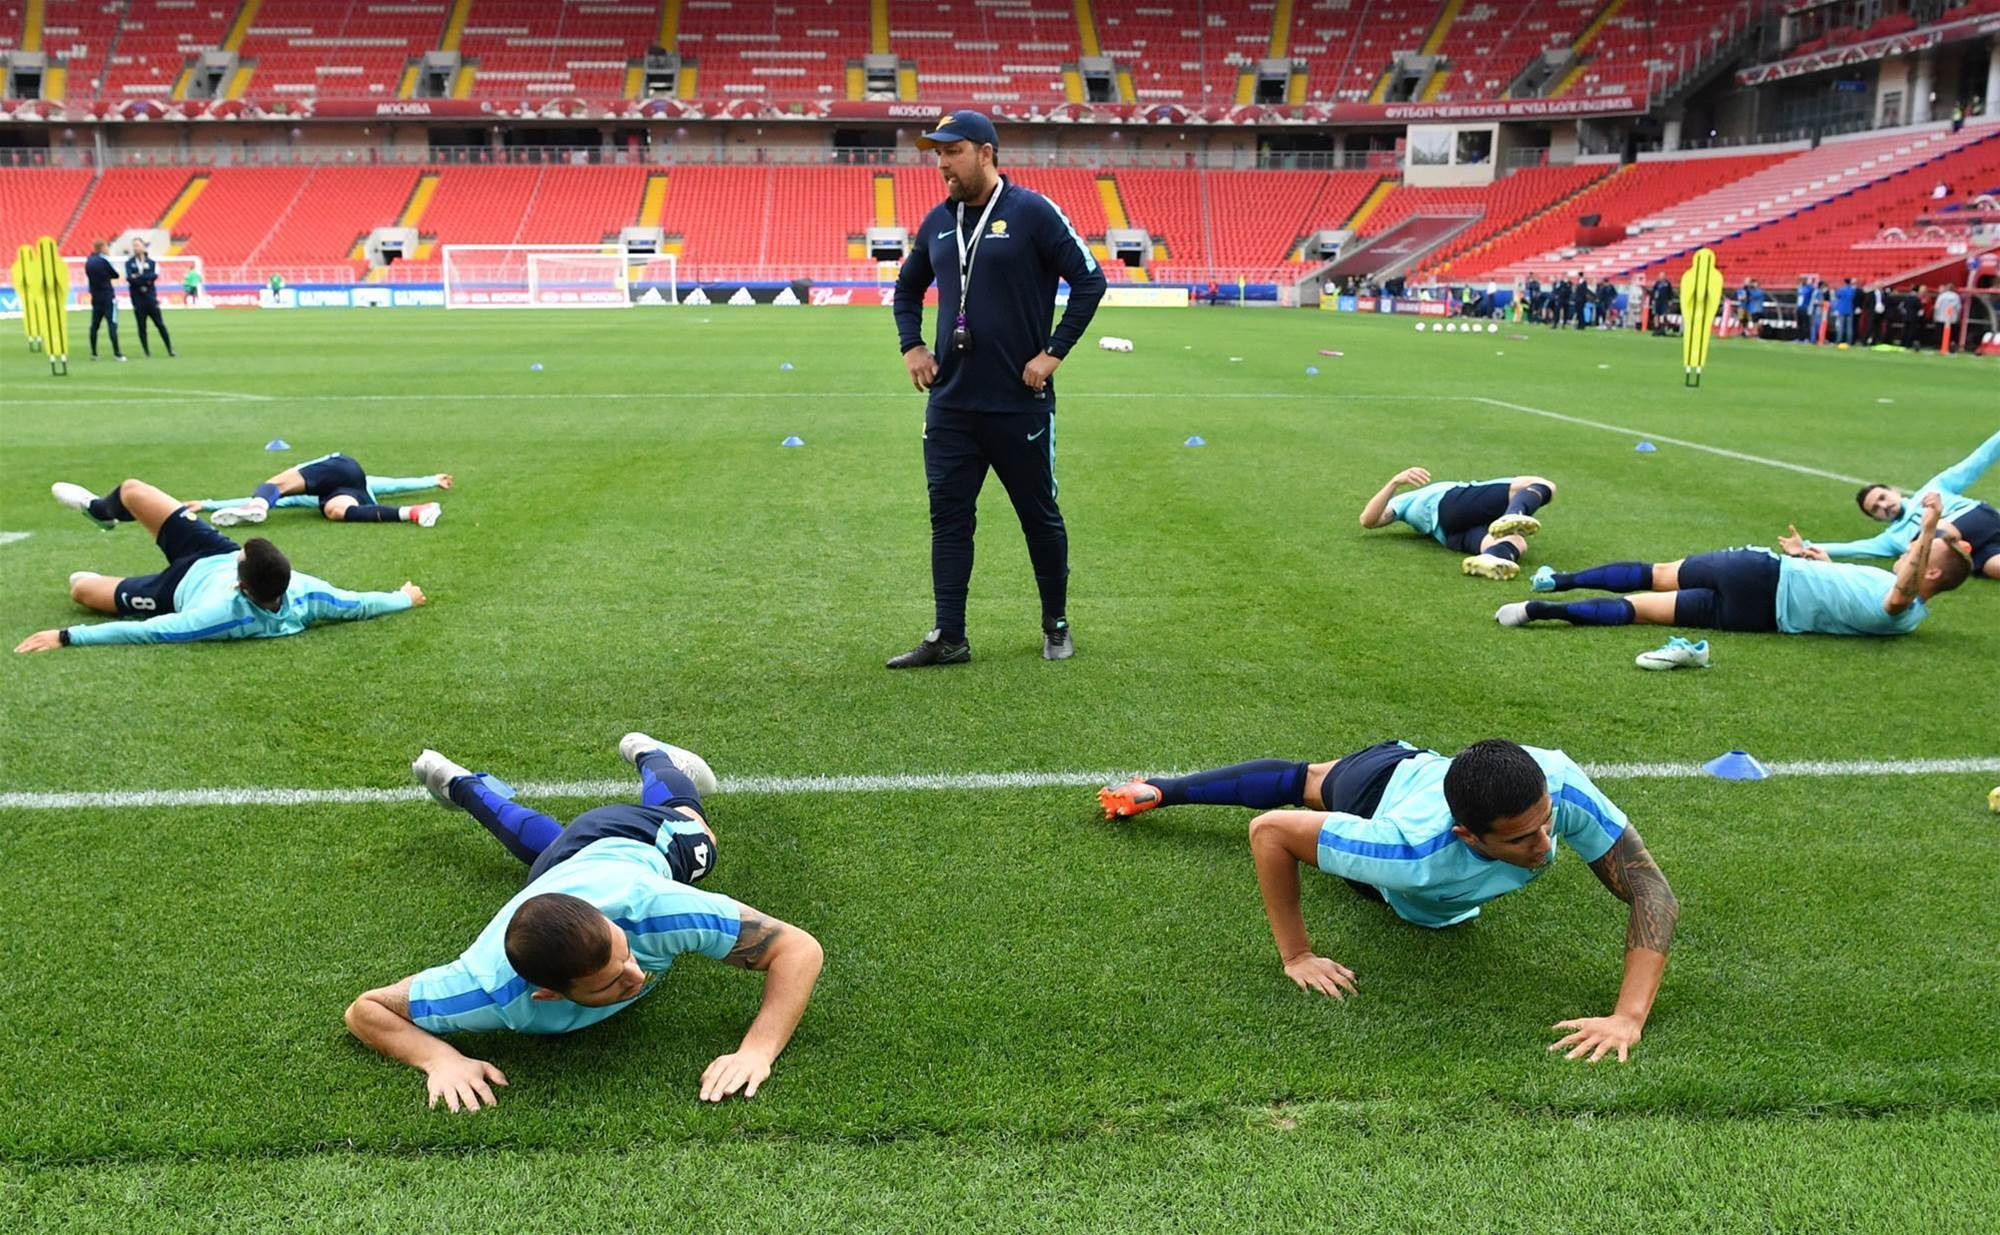 Pics: Roos, Chile train ahead of Moscow clash